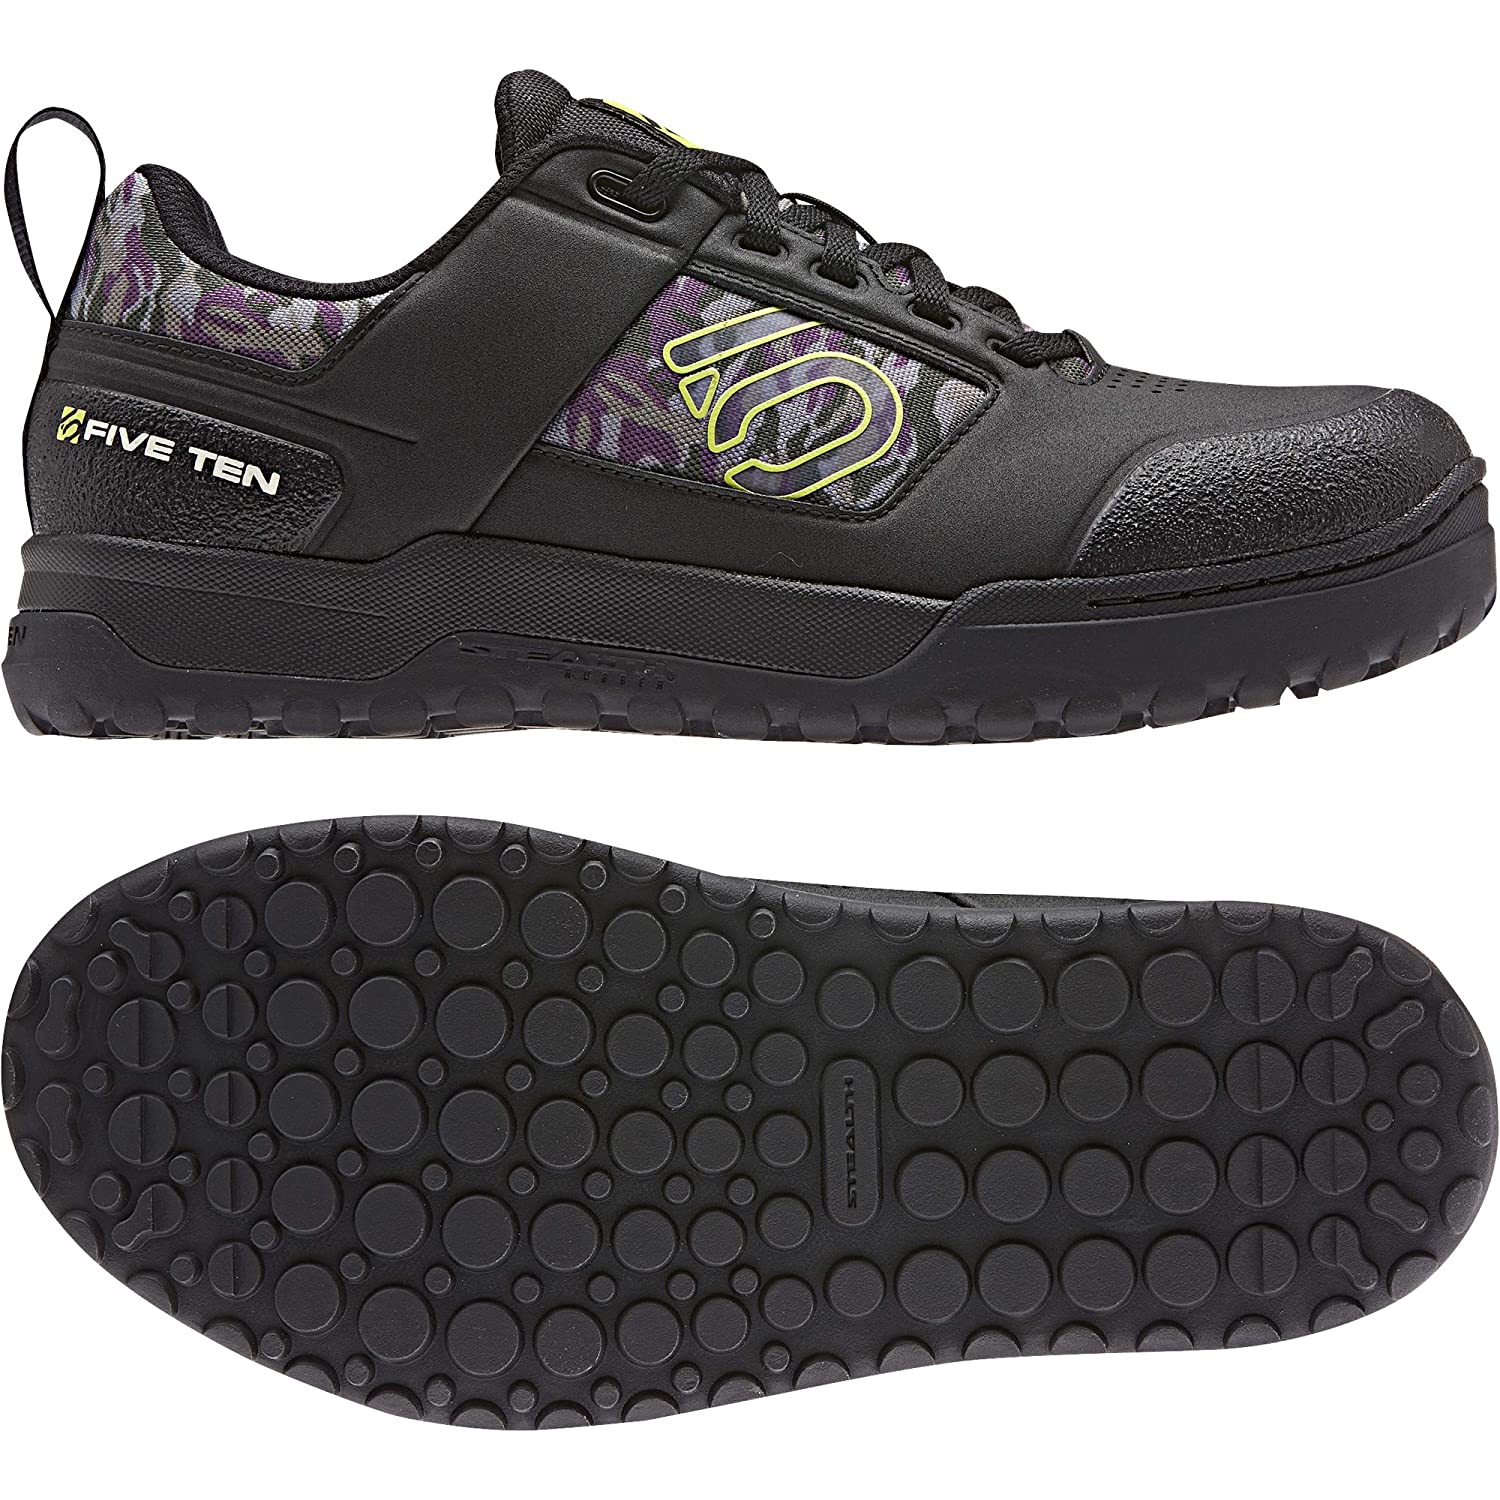 - - Five Ten Girls MTB-Schuhe Impact Pro Cargo schwarz Semi Solar Gelb Night Cargo  der beste Kundendienst